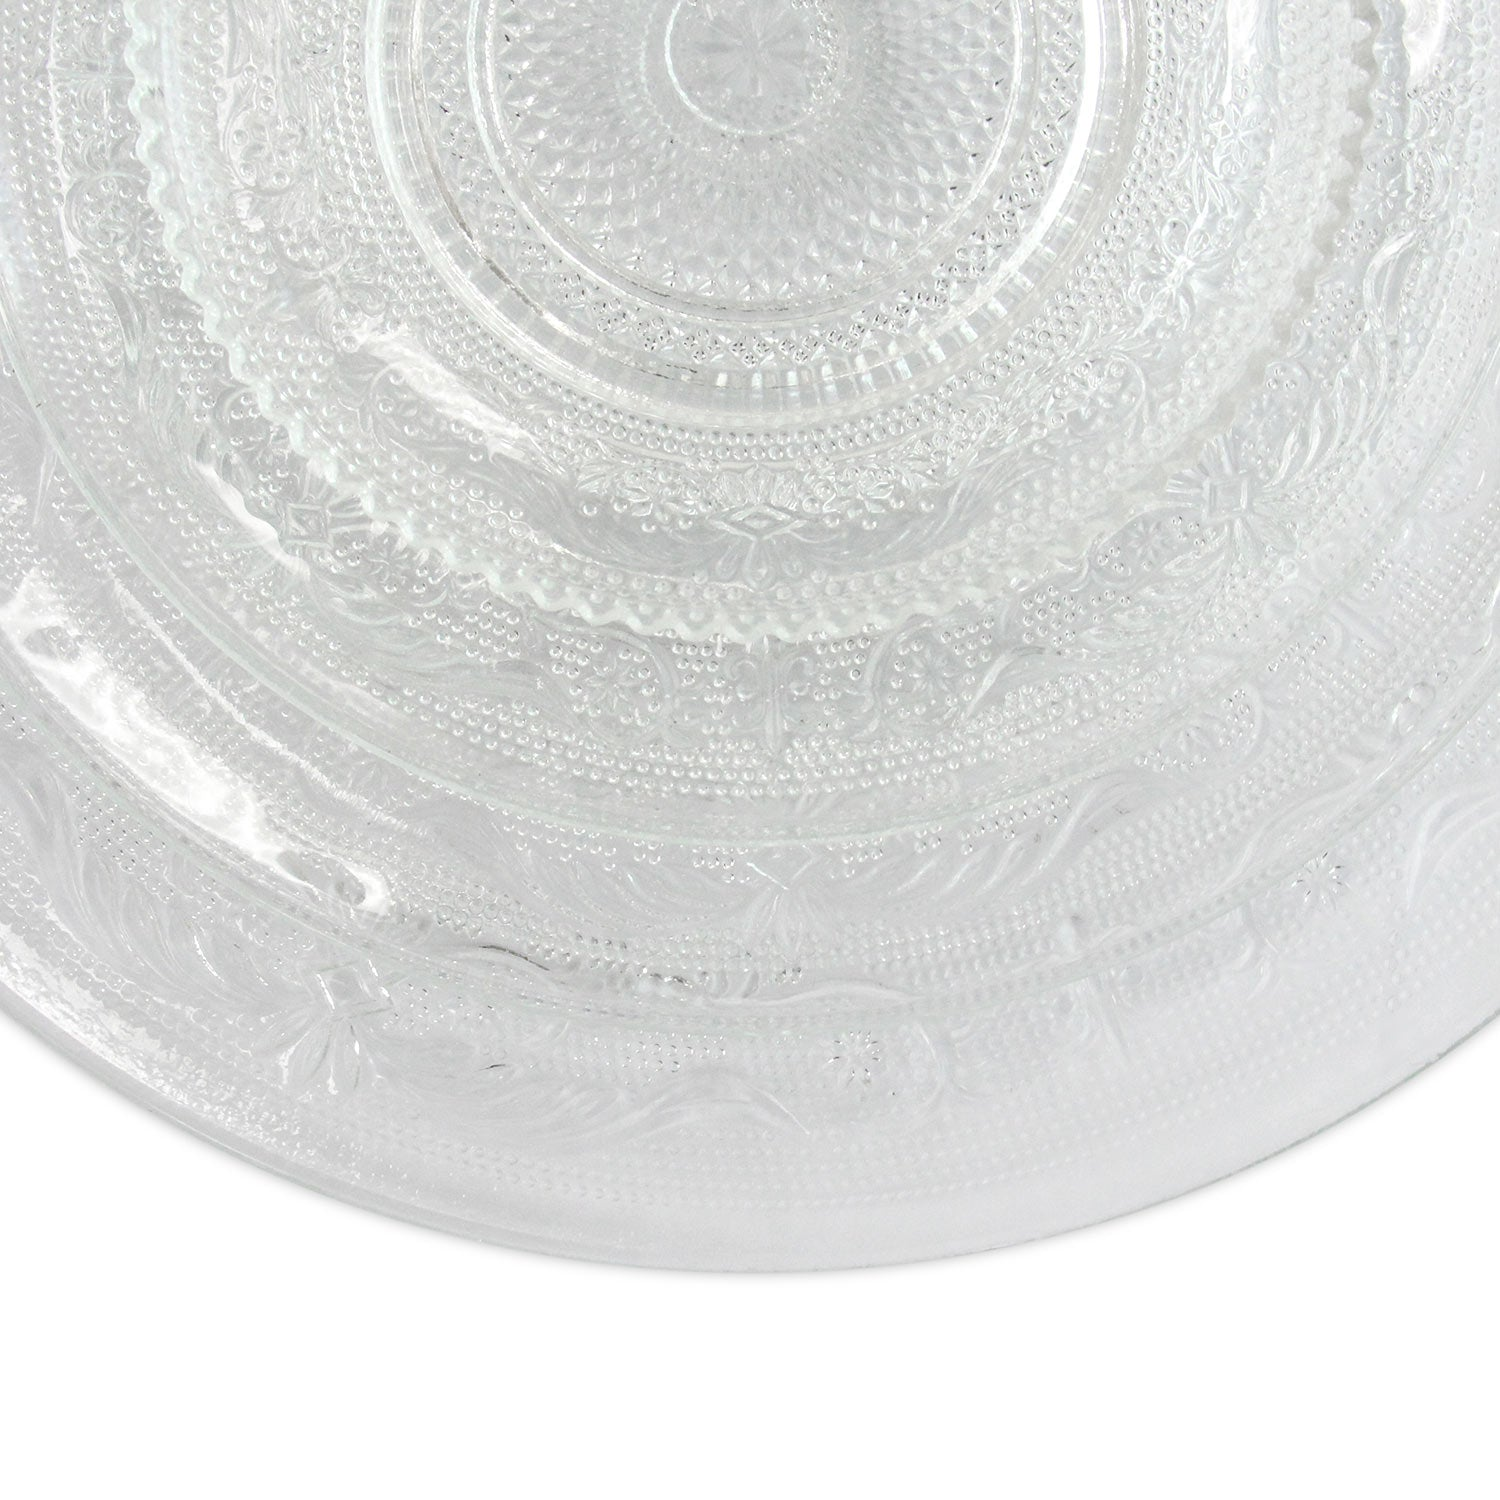 Charger Plate - Vintage Clear Glass 13""